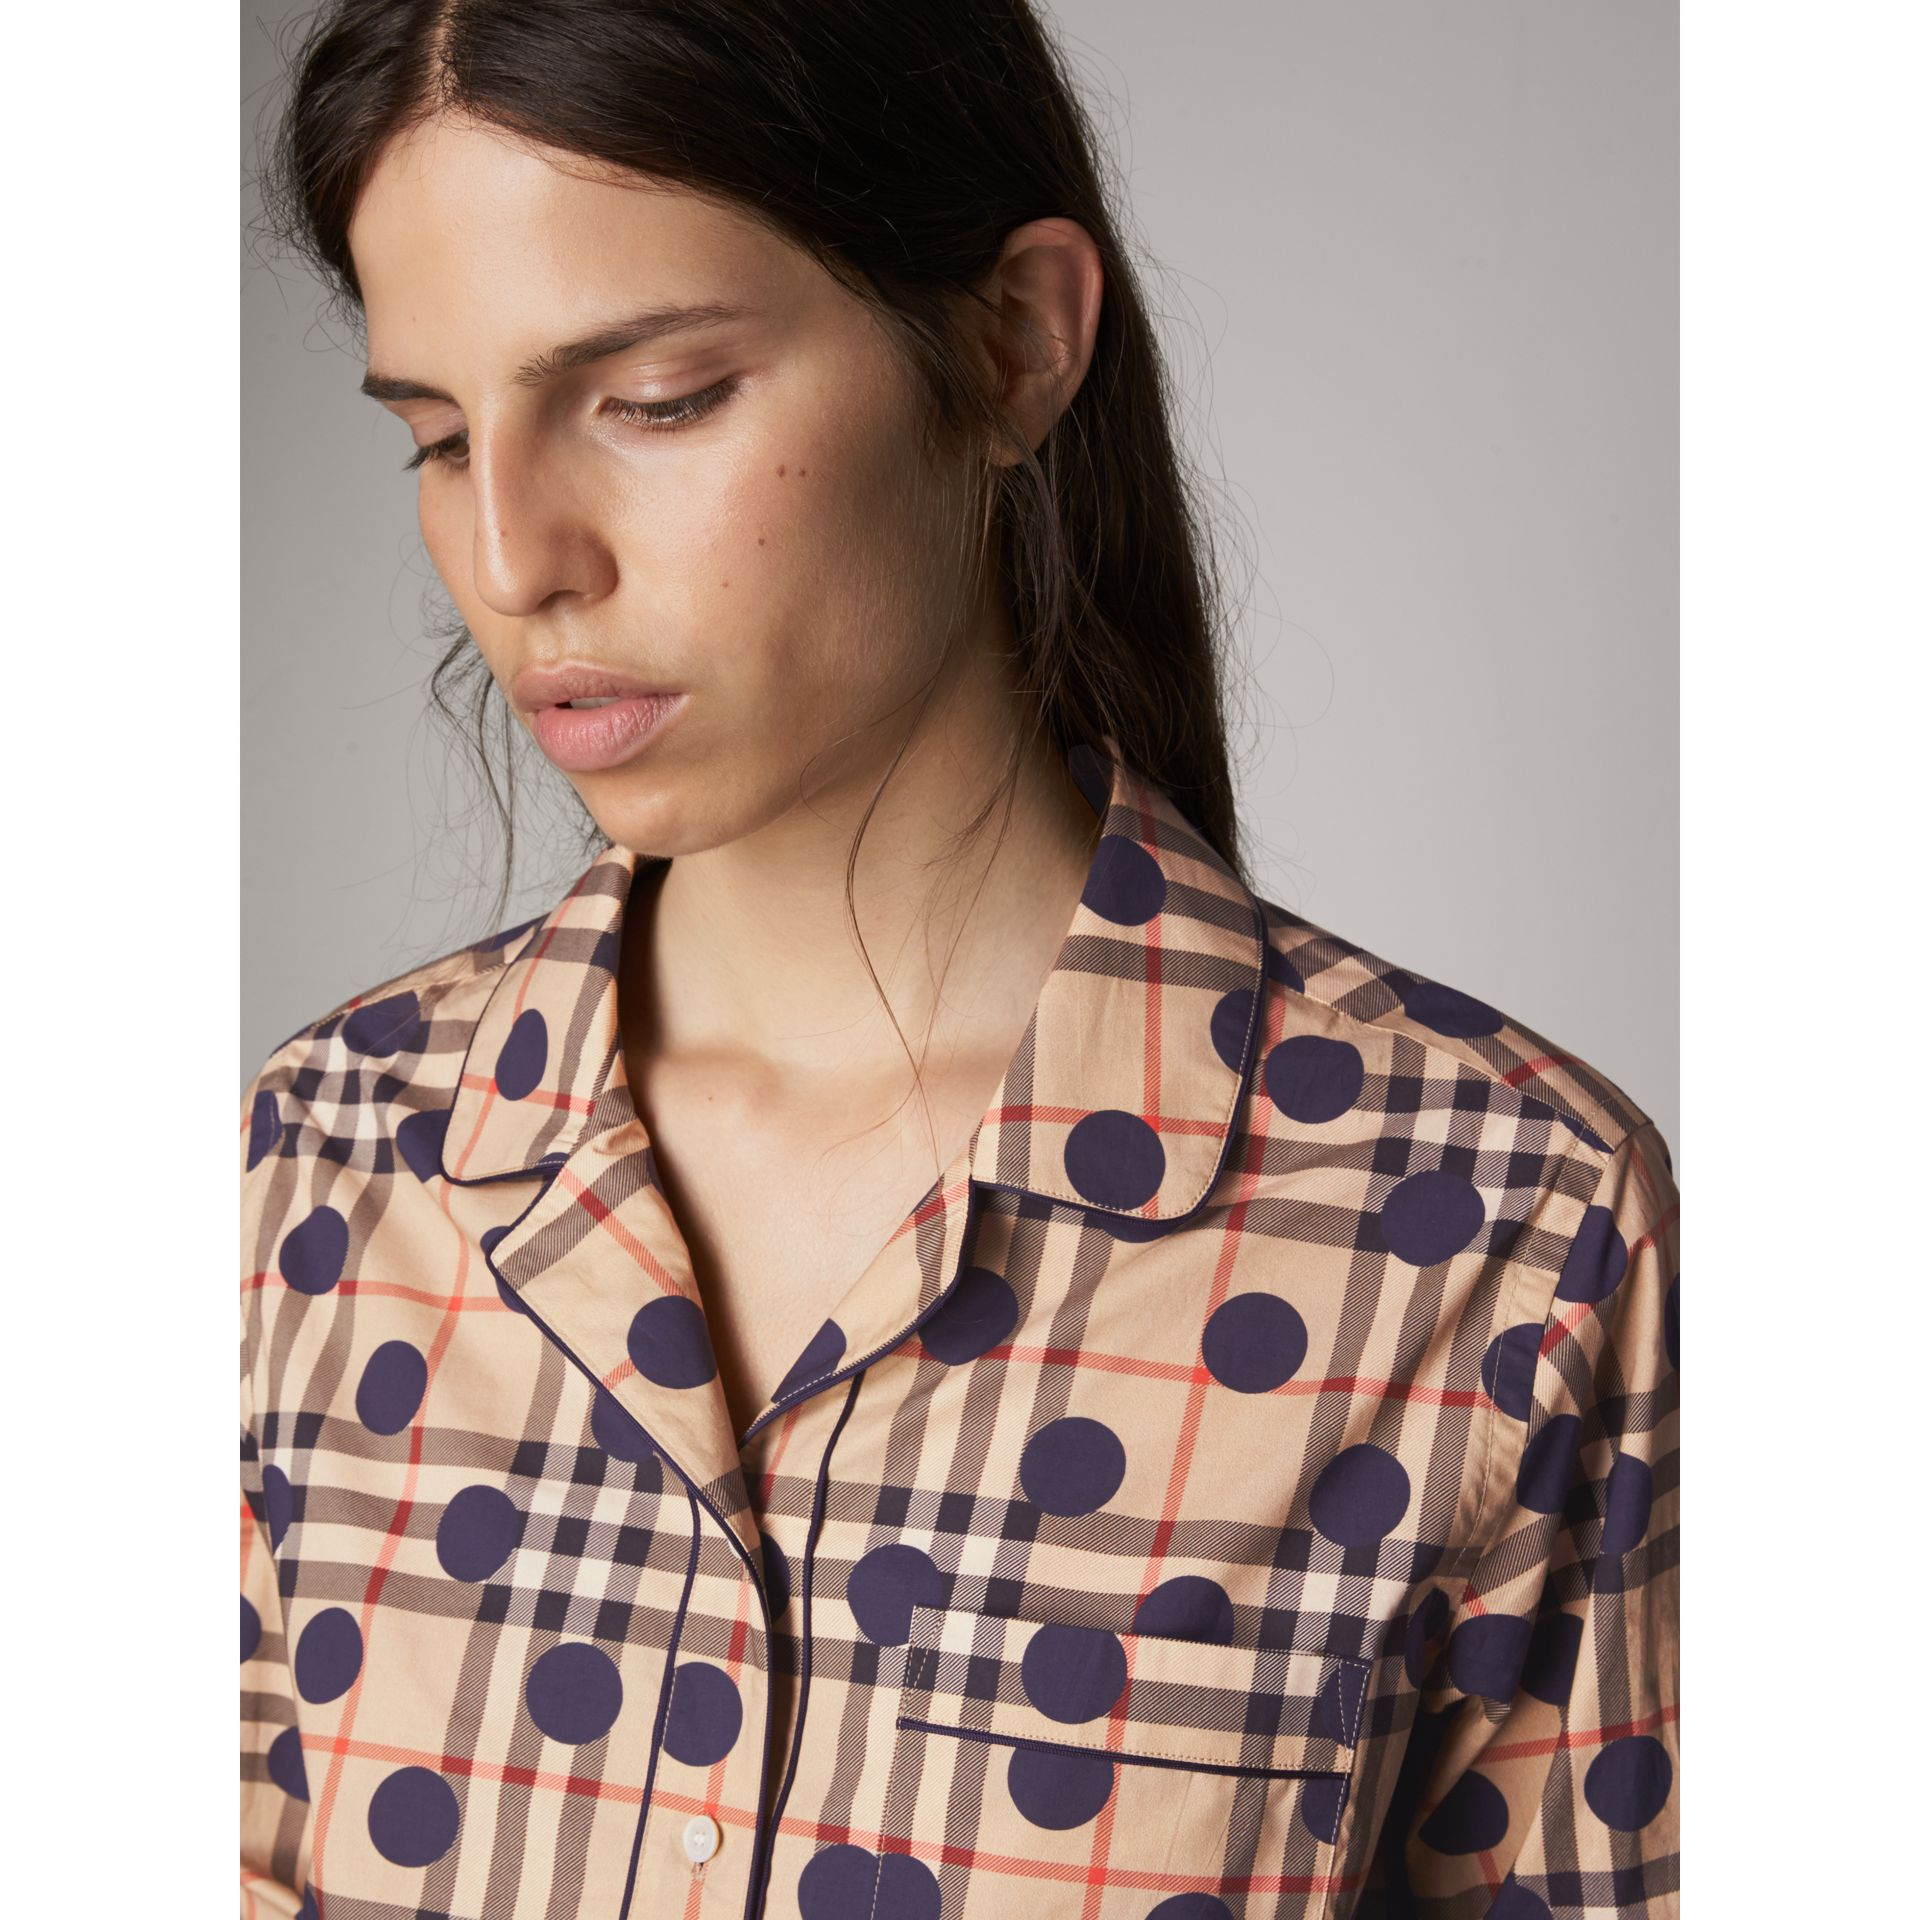 Polka-dot Check Cotton Pyjama-style Shirt in Navy - Women | Burberry United States - gallery image 1